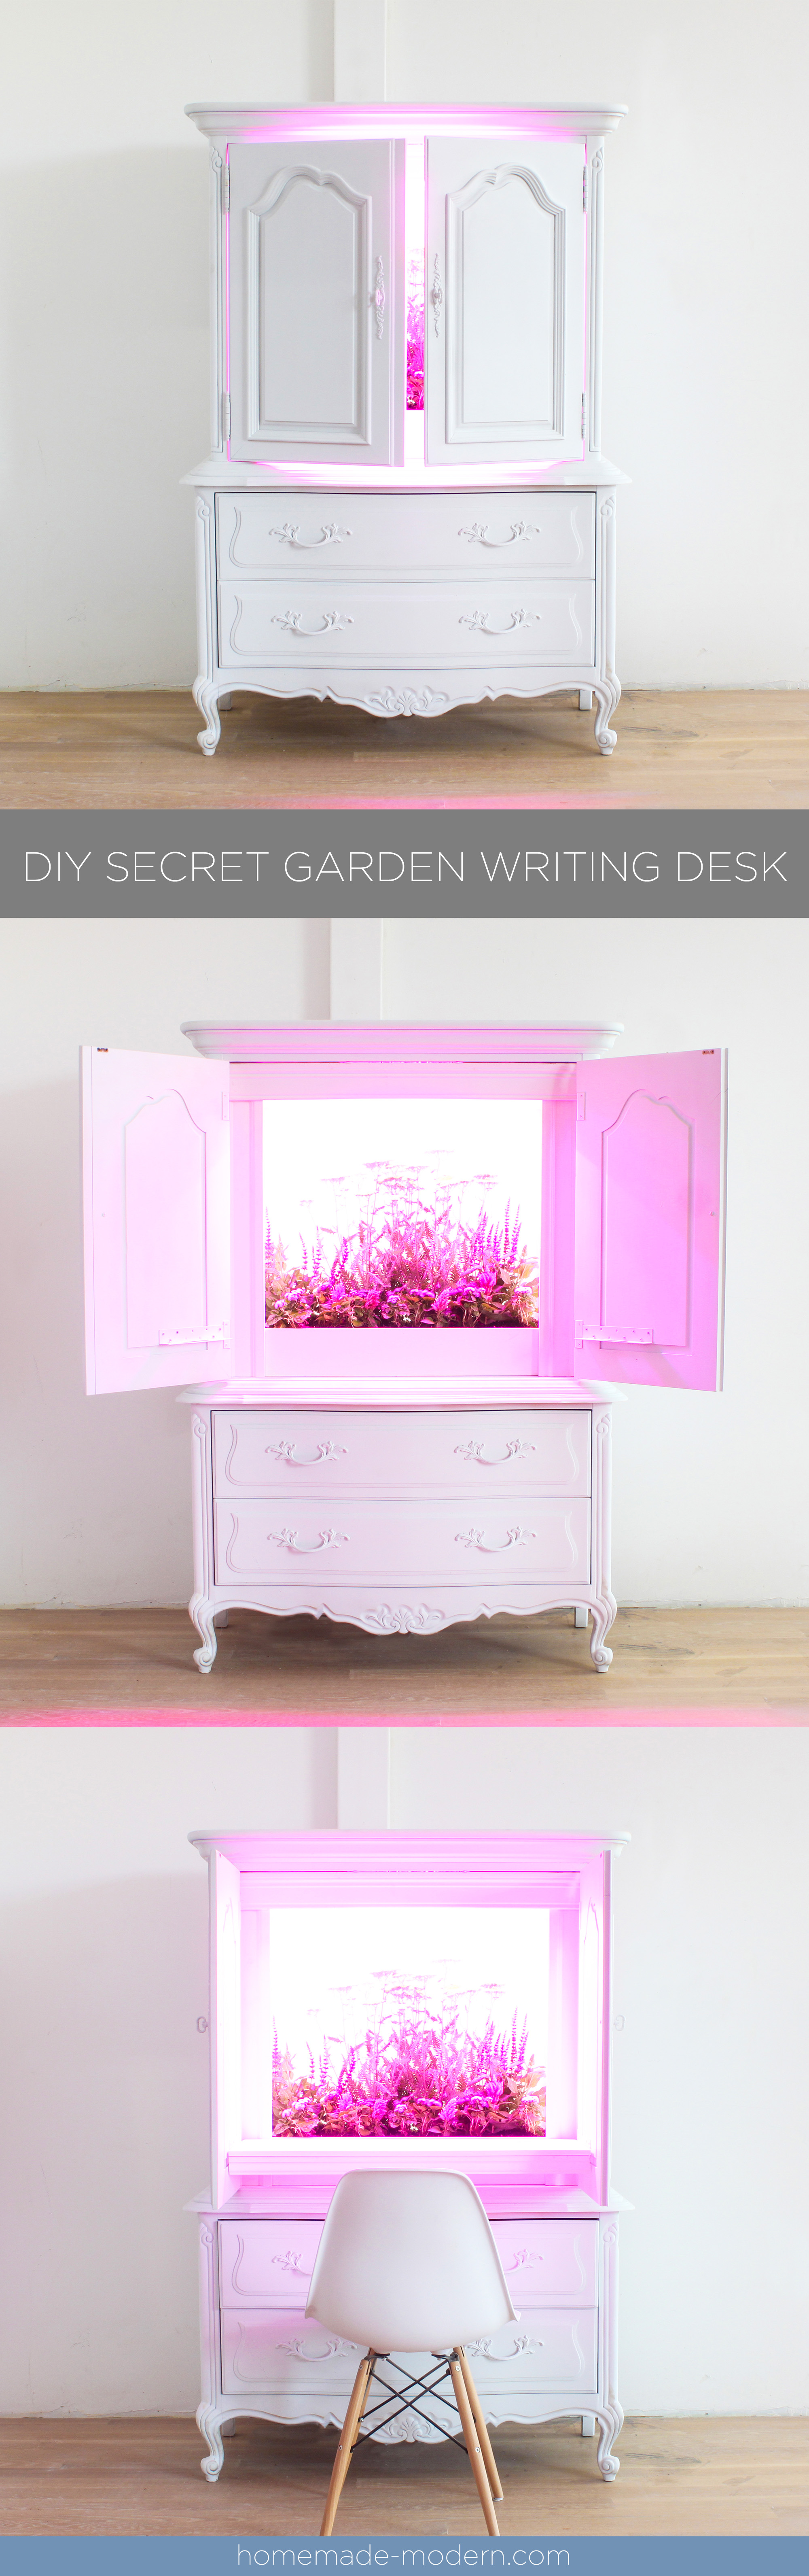 This writing desk was built inside of a wardrobe and has LED grow lights that provide light for real the real plants growing inside. This is one of Ben Uyeda workspace projects where he explores ideas of how to foster creativity during repetitive tasks. For more information go to HomeMade-Modern.com